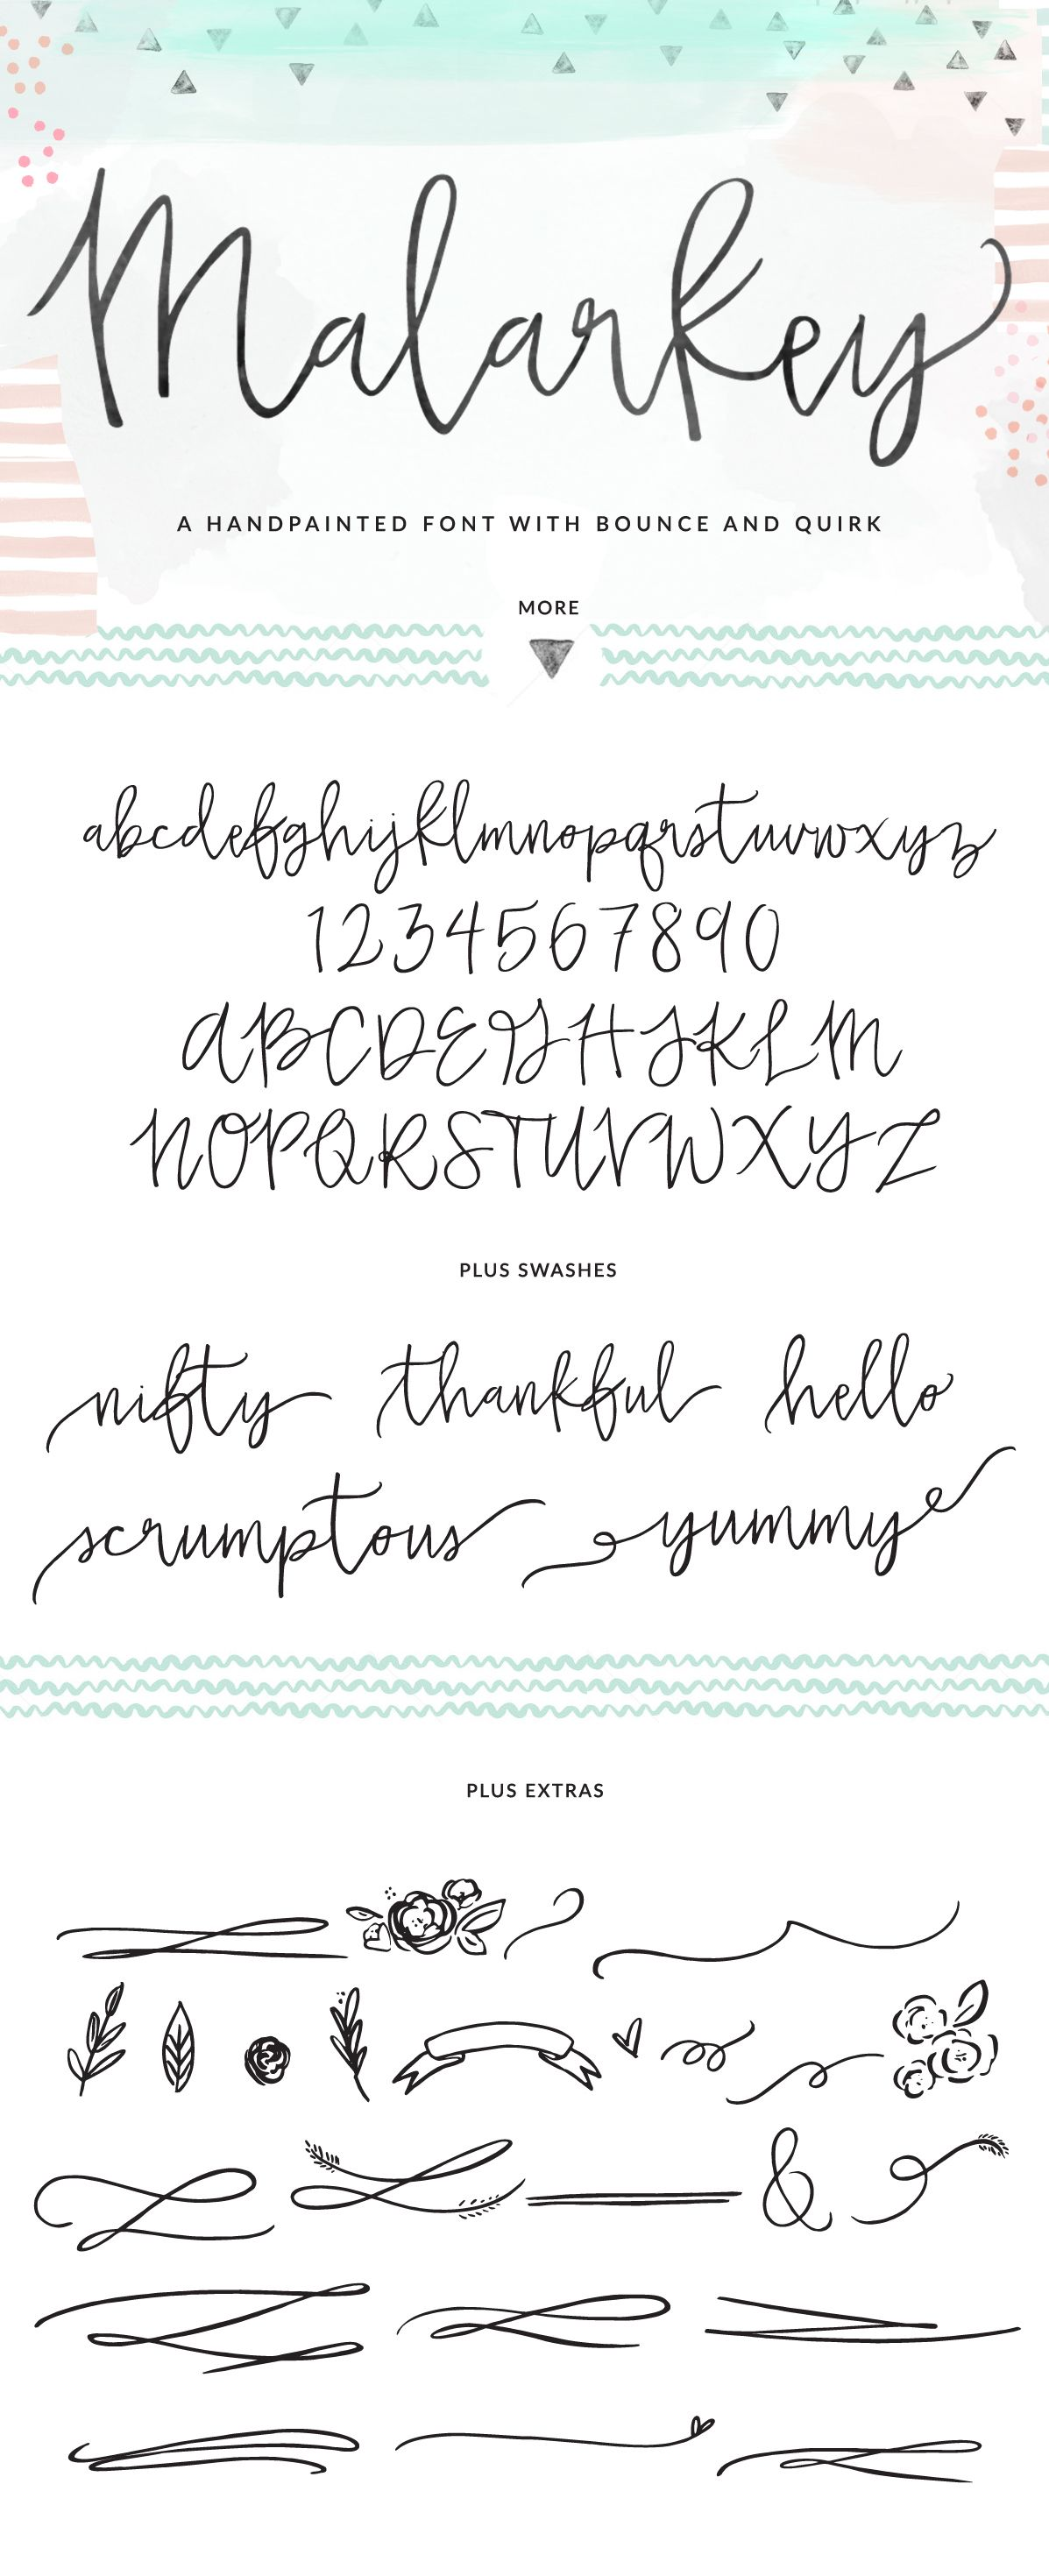 Malarkey font brushed calligraphy font fonts Handwriting calligraphy